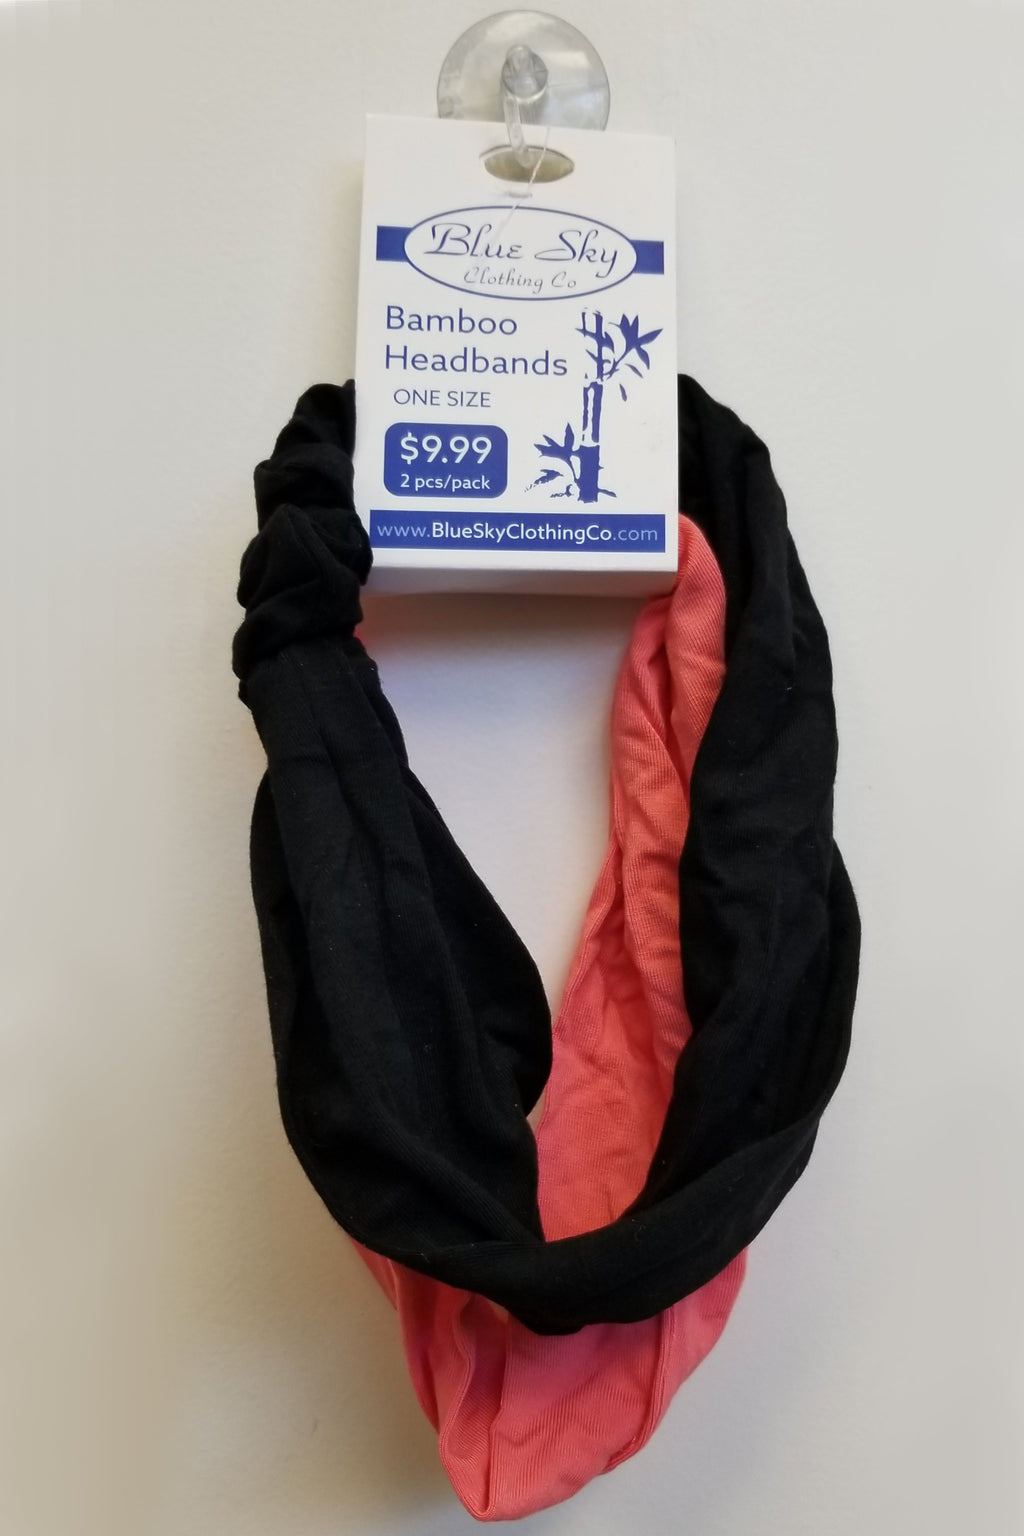 Bamboo Headbands, Black/Peach - Blue Sky Clothing Co